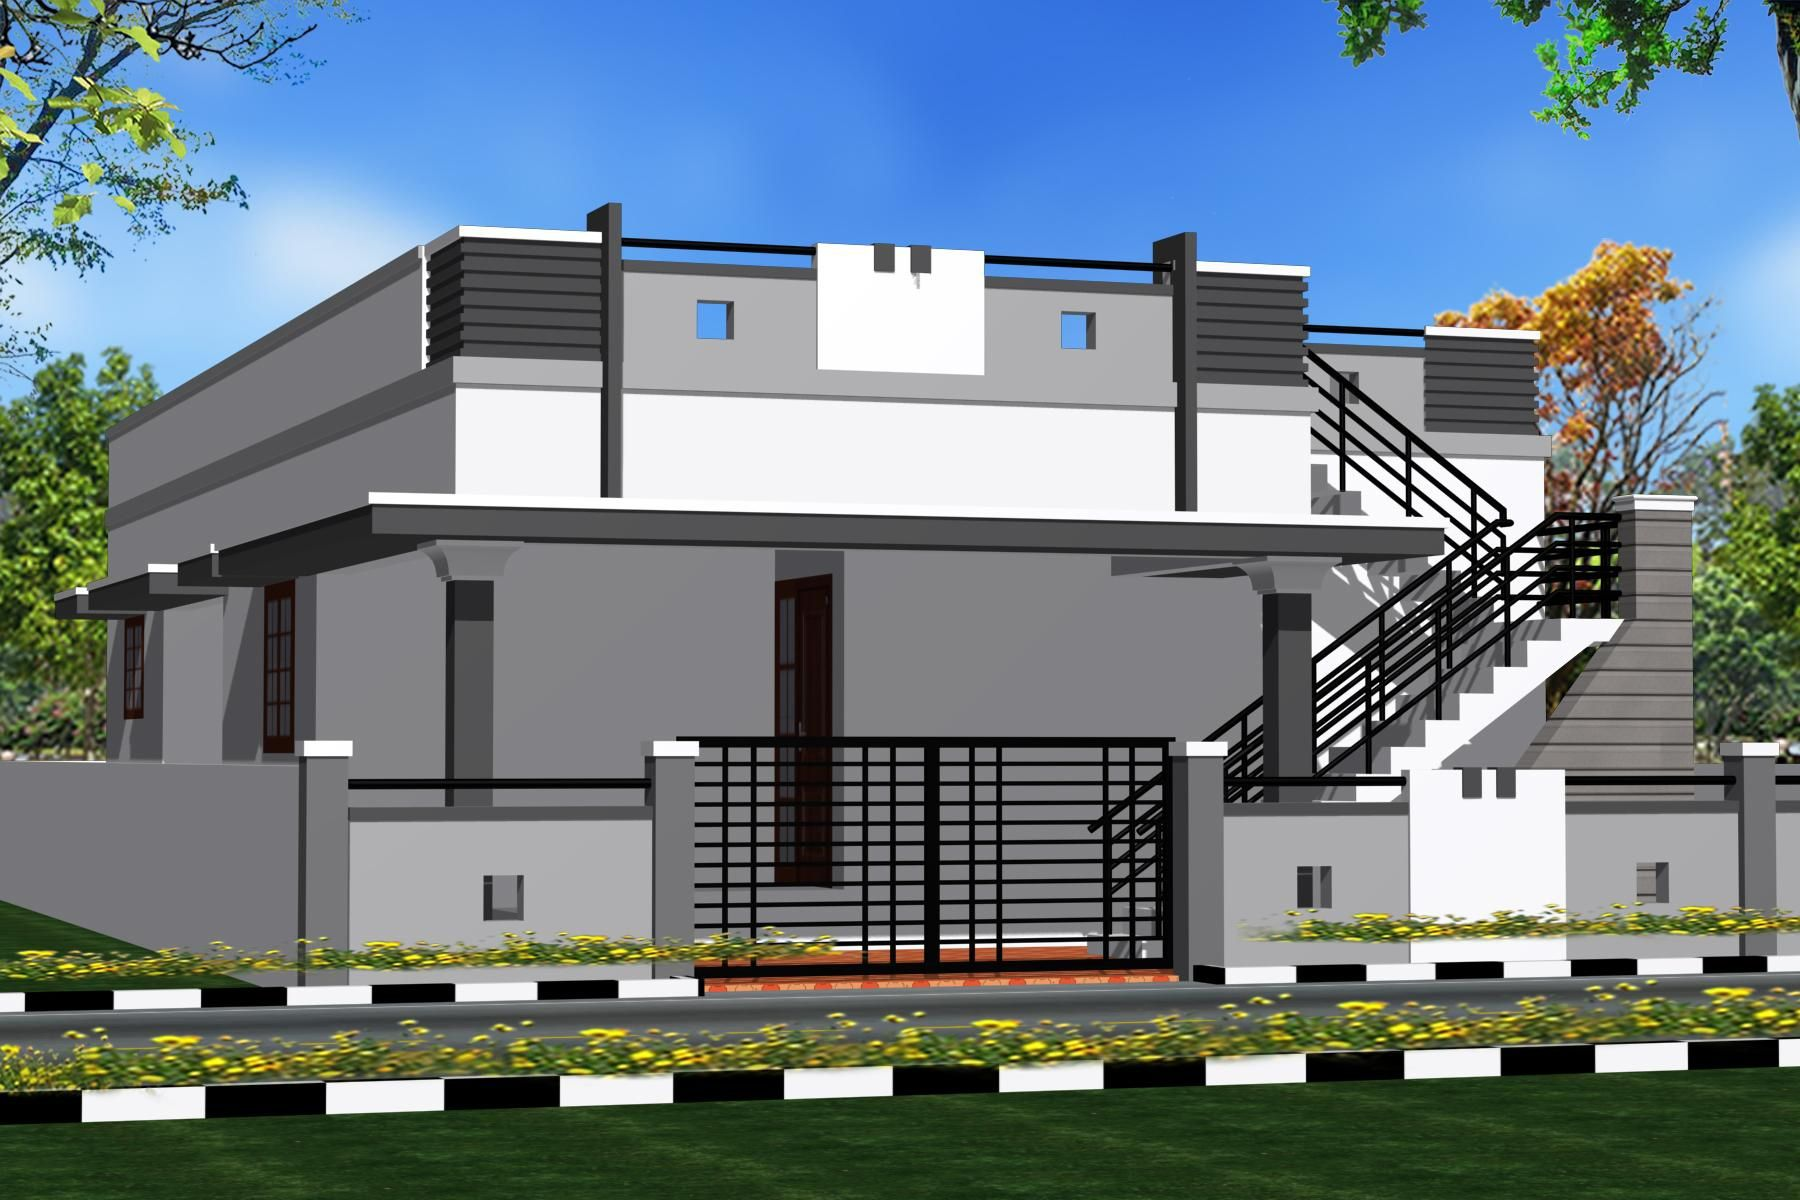 House Compound Wall Design Furnished : Latest compound wall designs http ultimaterpmod